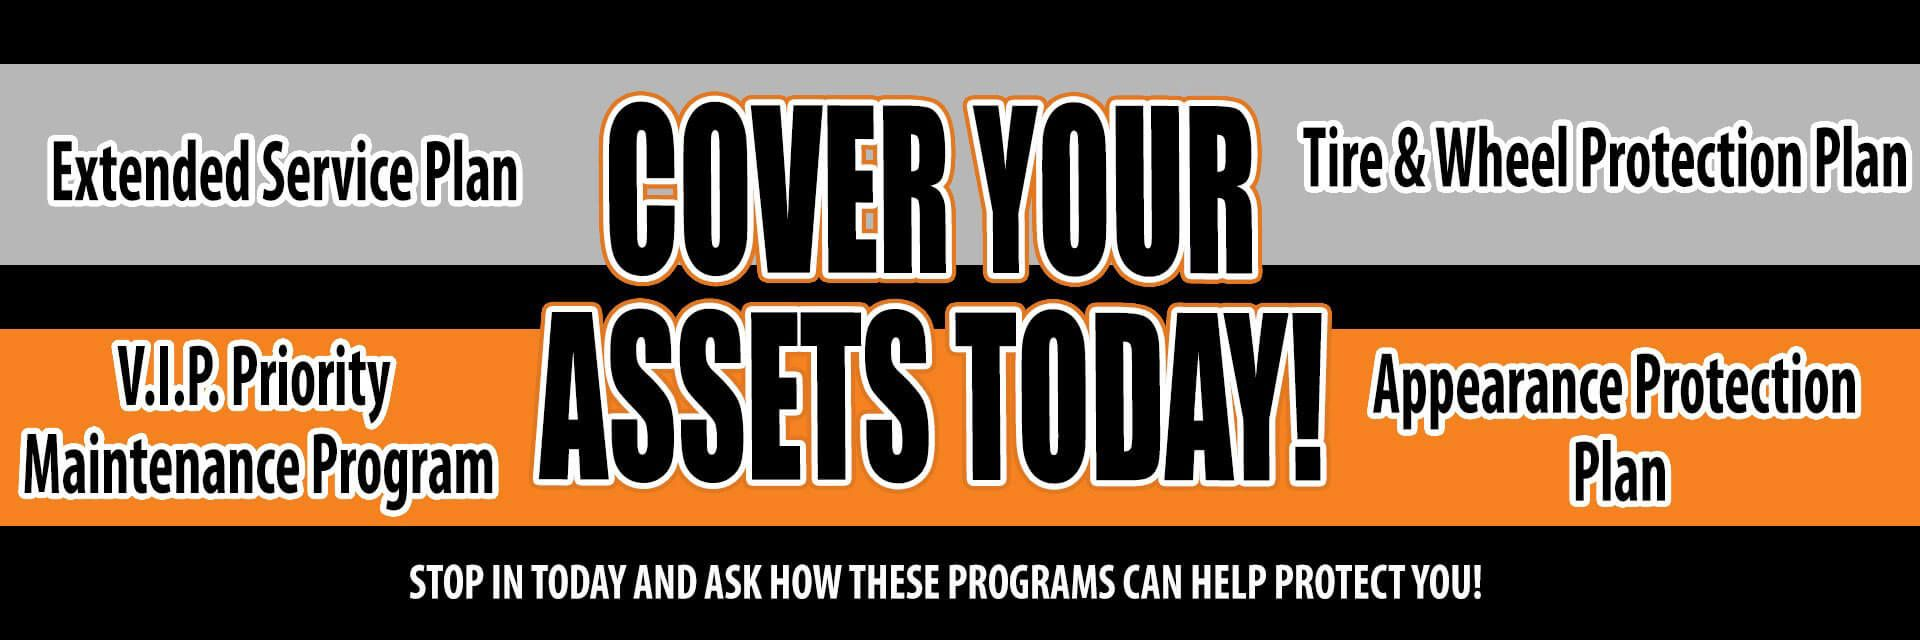 Cover Your Assets with an extended service plan at Superstition Harley-Davidson